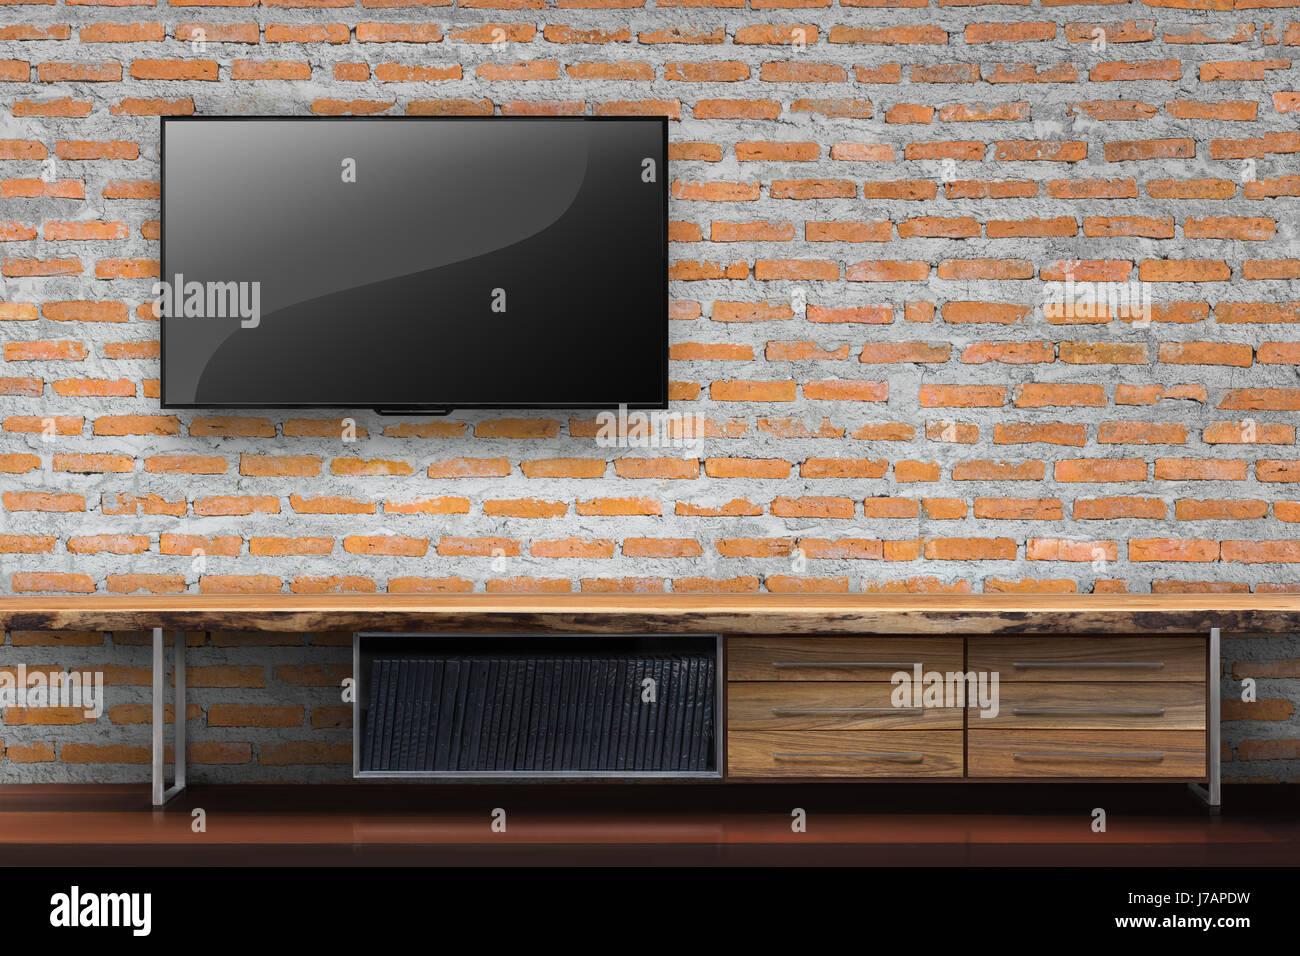 Stock Photo   Tv On Red Brick Wall With Empty Wooden Table Media Furniture  In Living Room Interior